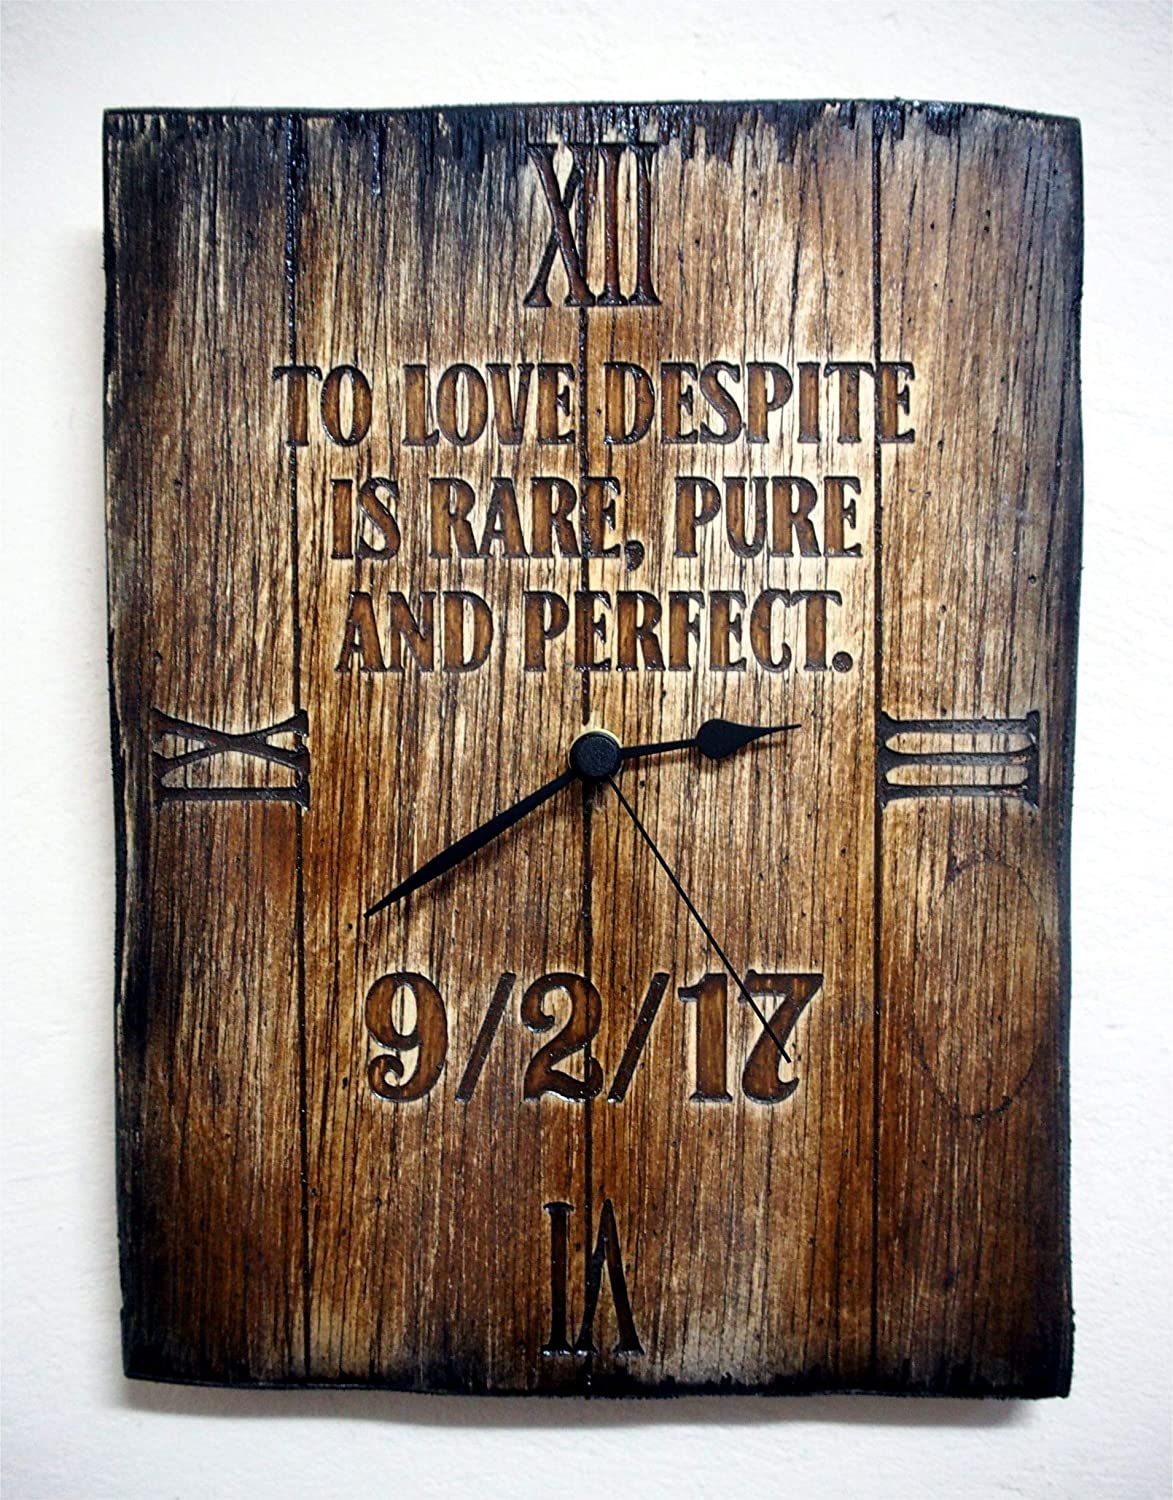 Personalized Rustic Wall Clock | Your engraved message on a distressed wood, wall clock | Vintage decor | Birthday gift | Housewarming gift